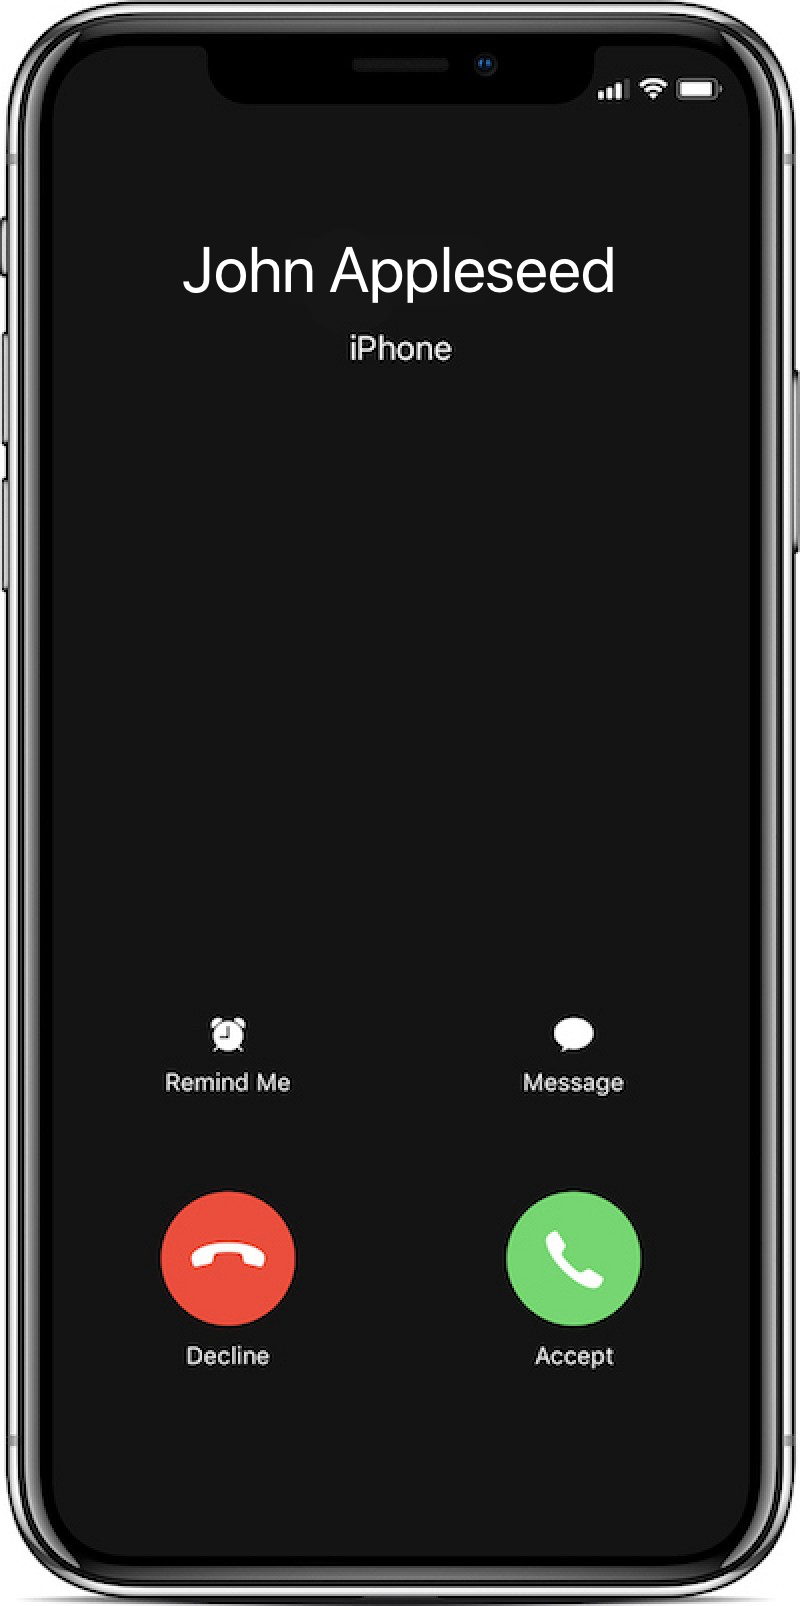 Image of iPhone X incoming call, which is experiencing a call delay bug.